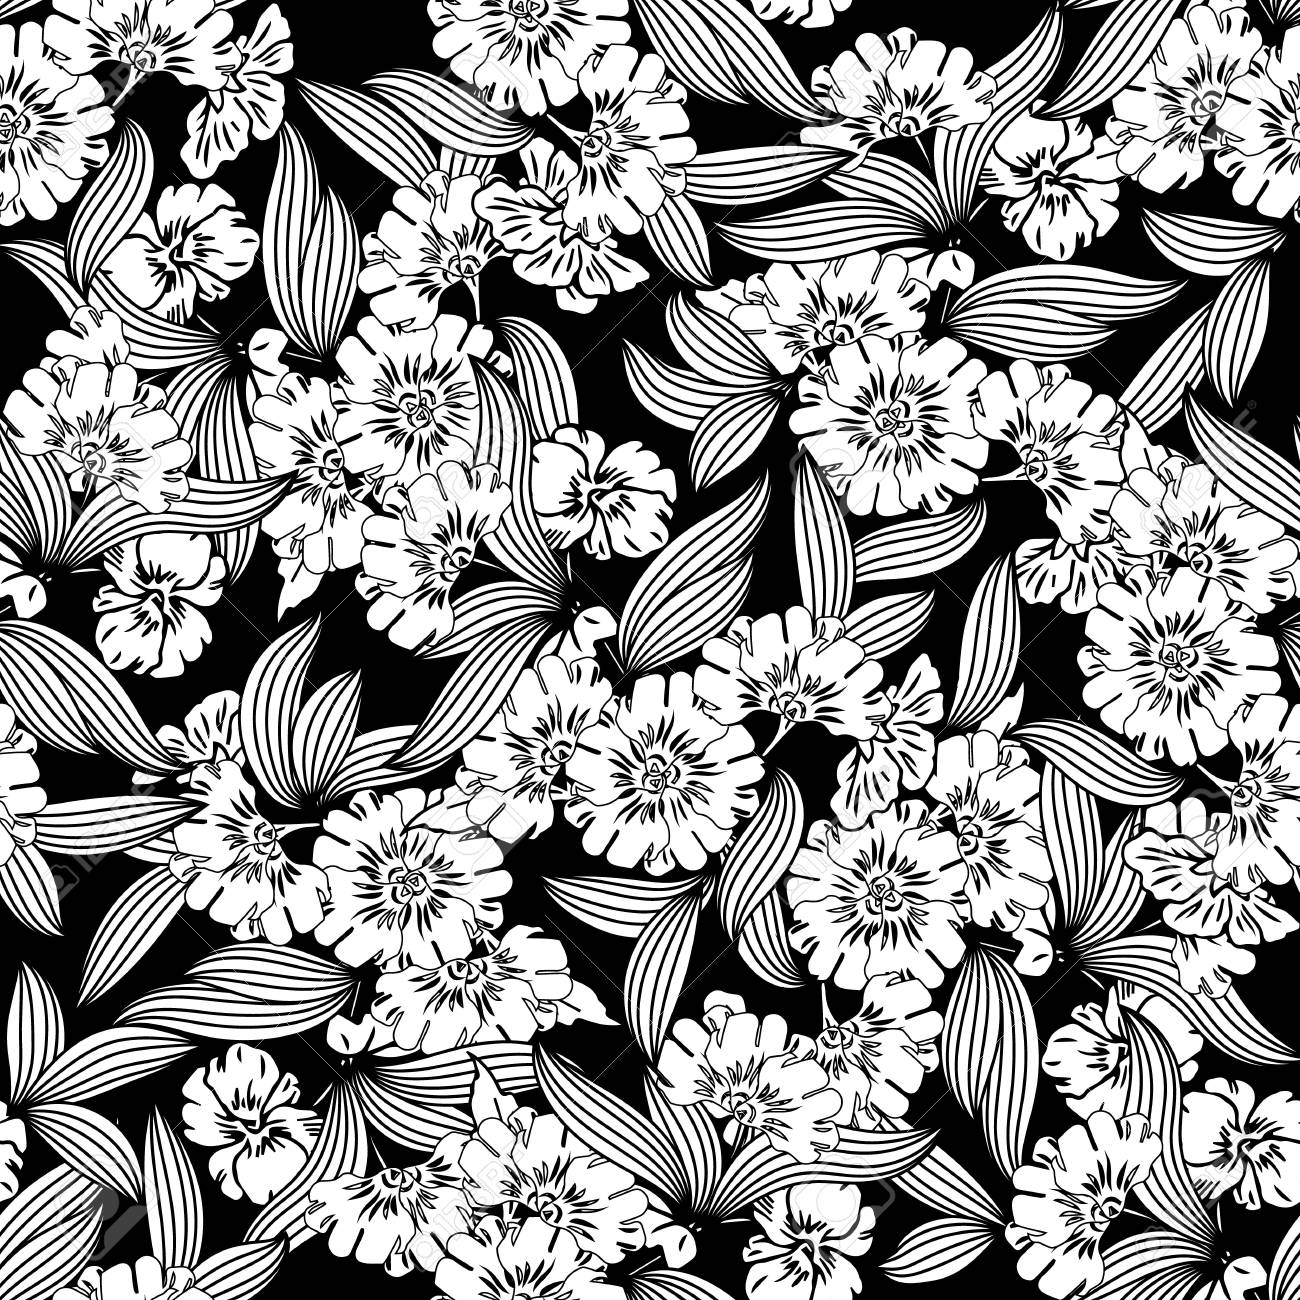 Floral Seamless Pattern Vector Black Background Wallpaper With